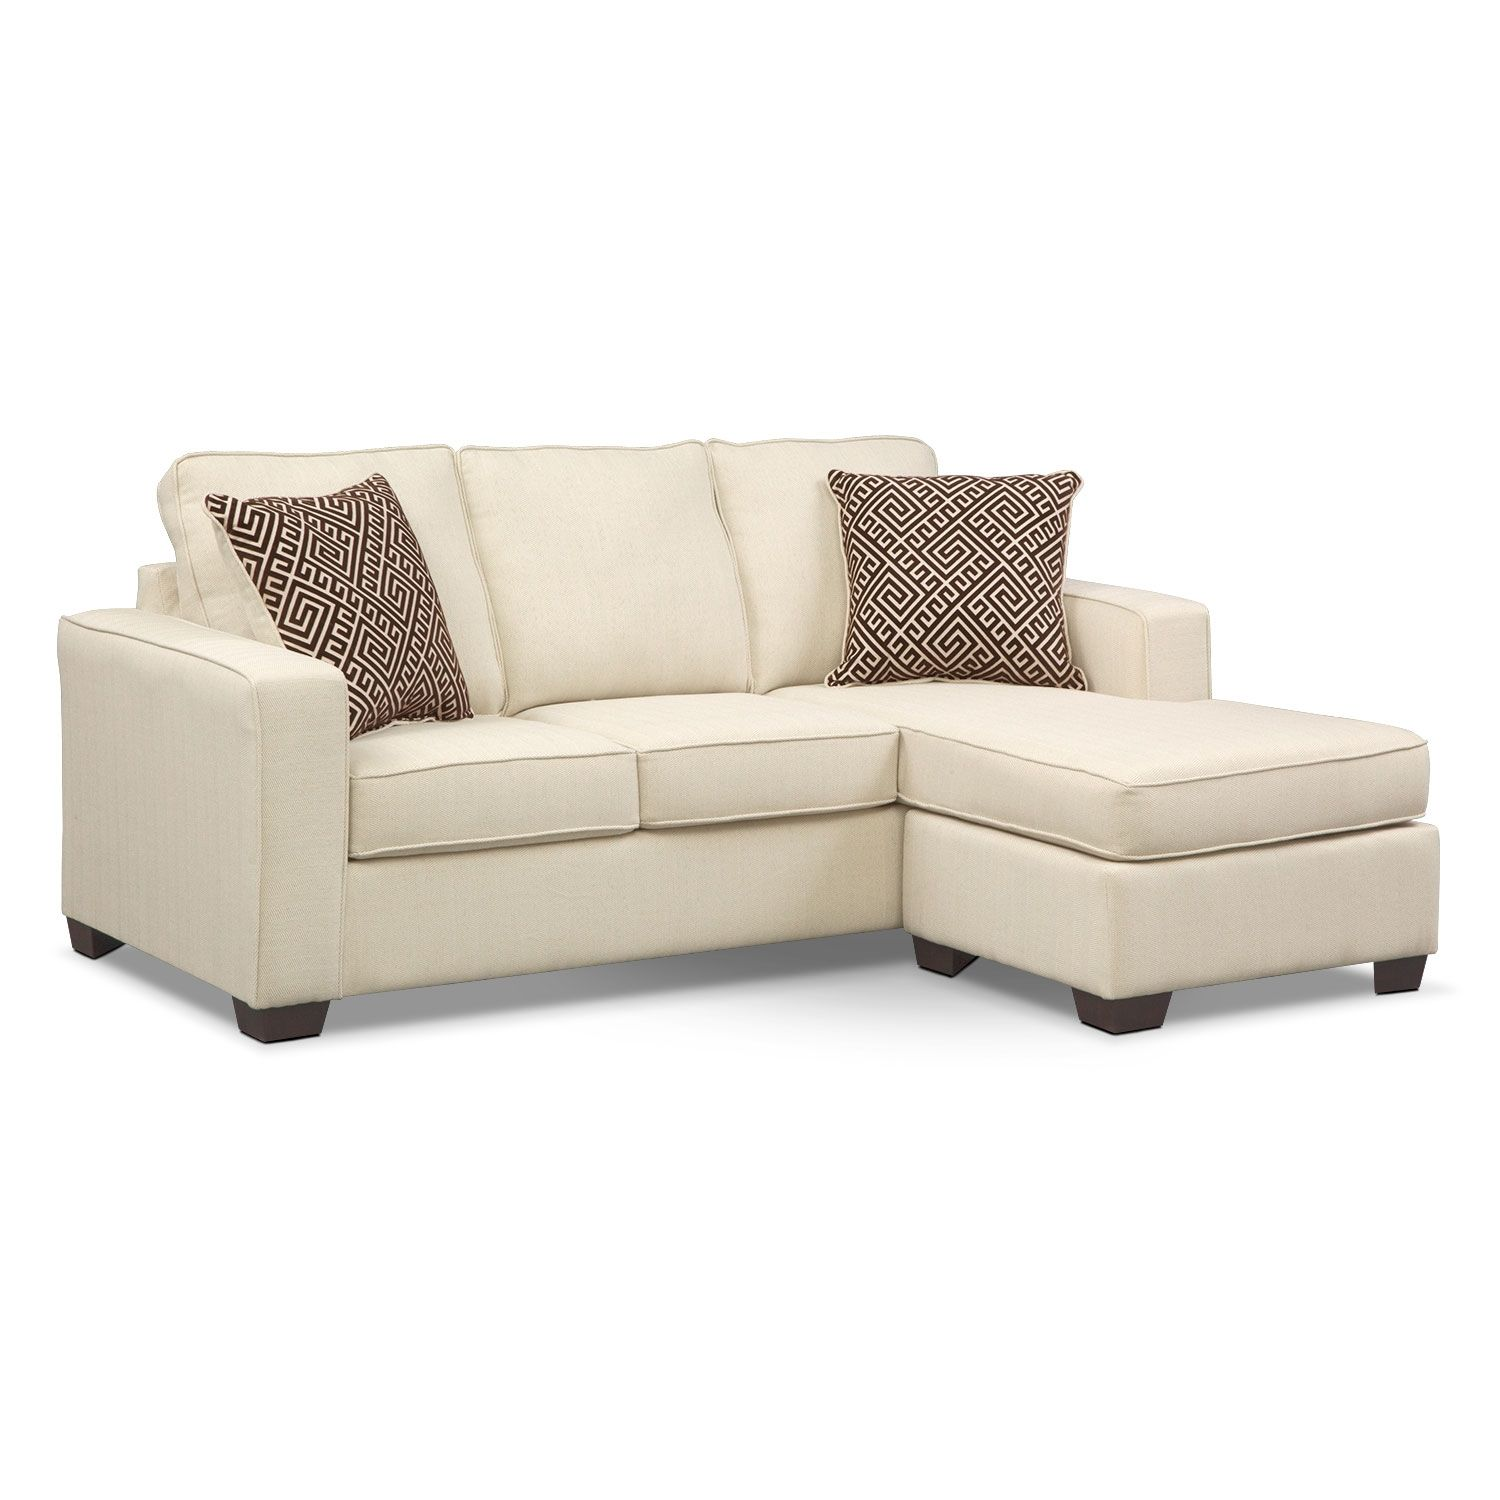 Living room furniture sterling beige queen memory foam sleeper sofa w chaise